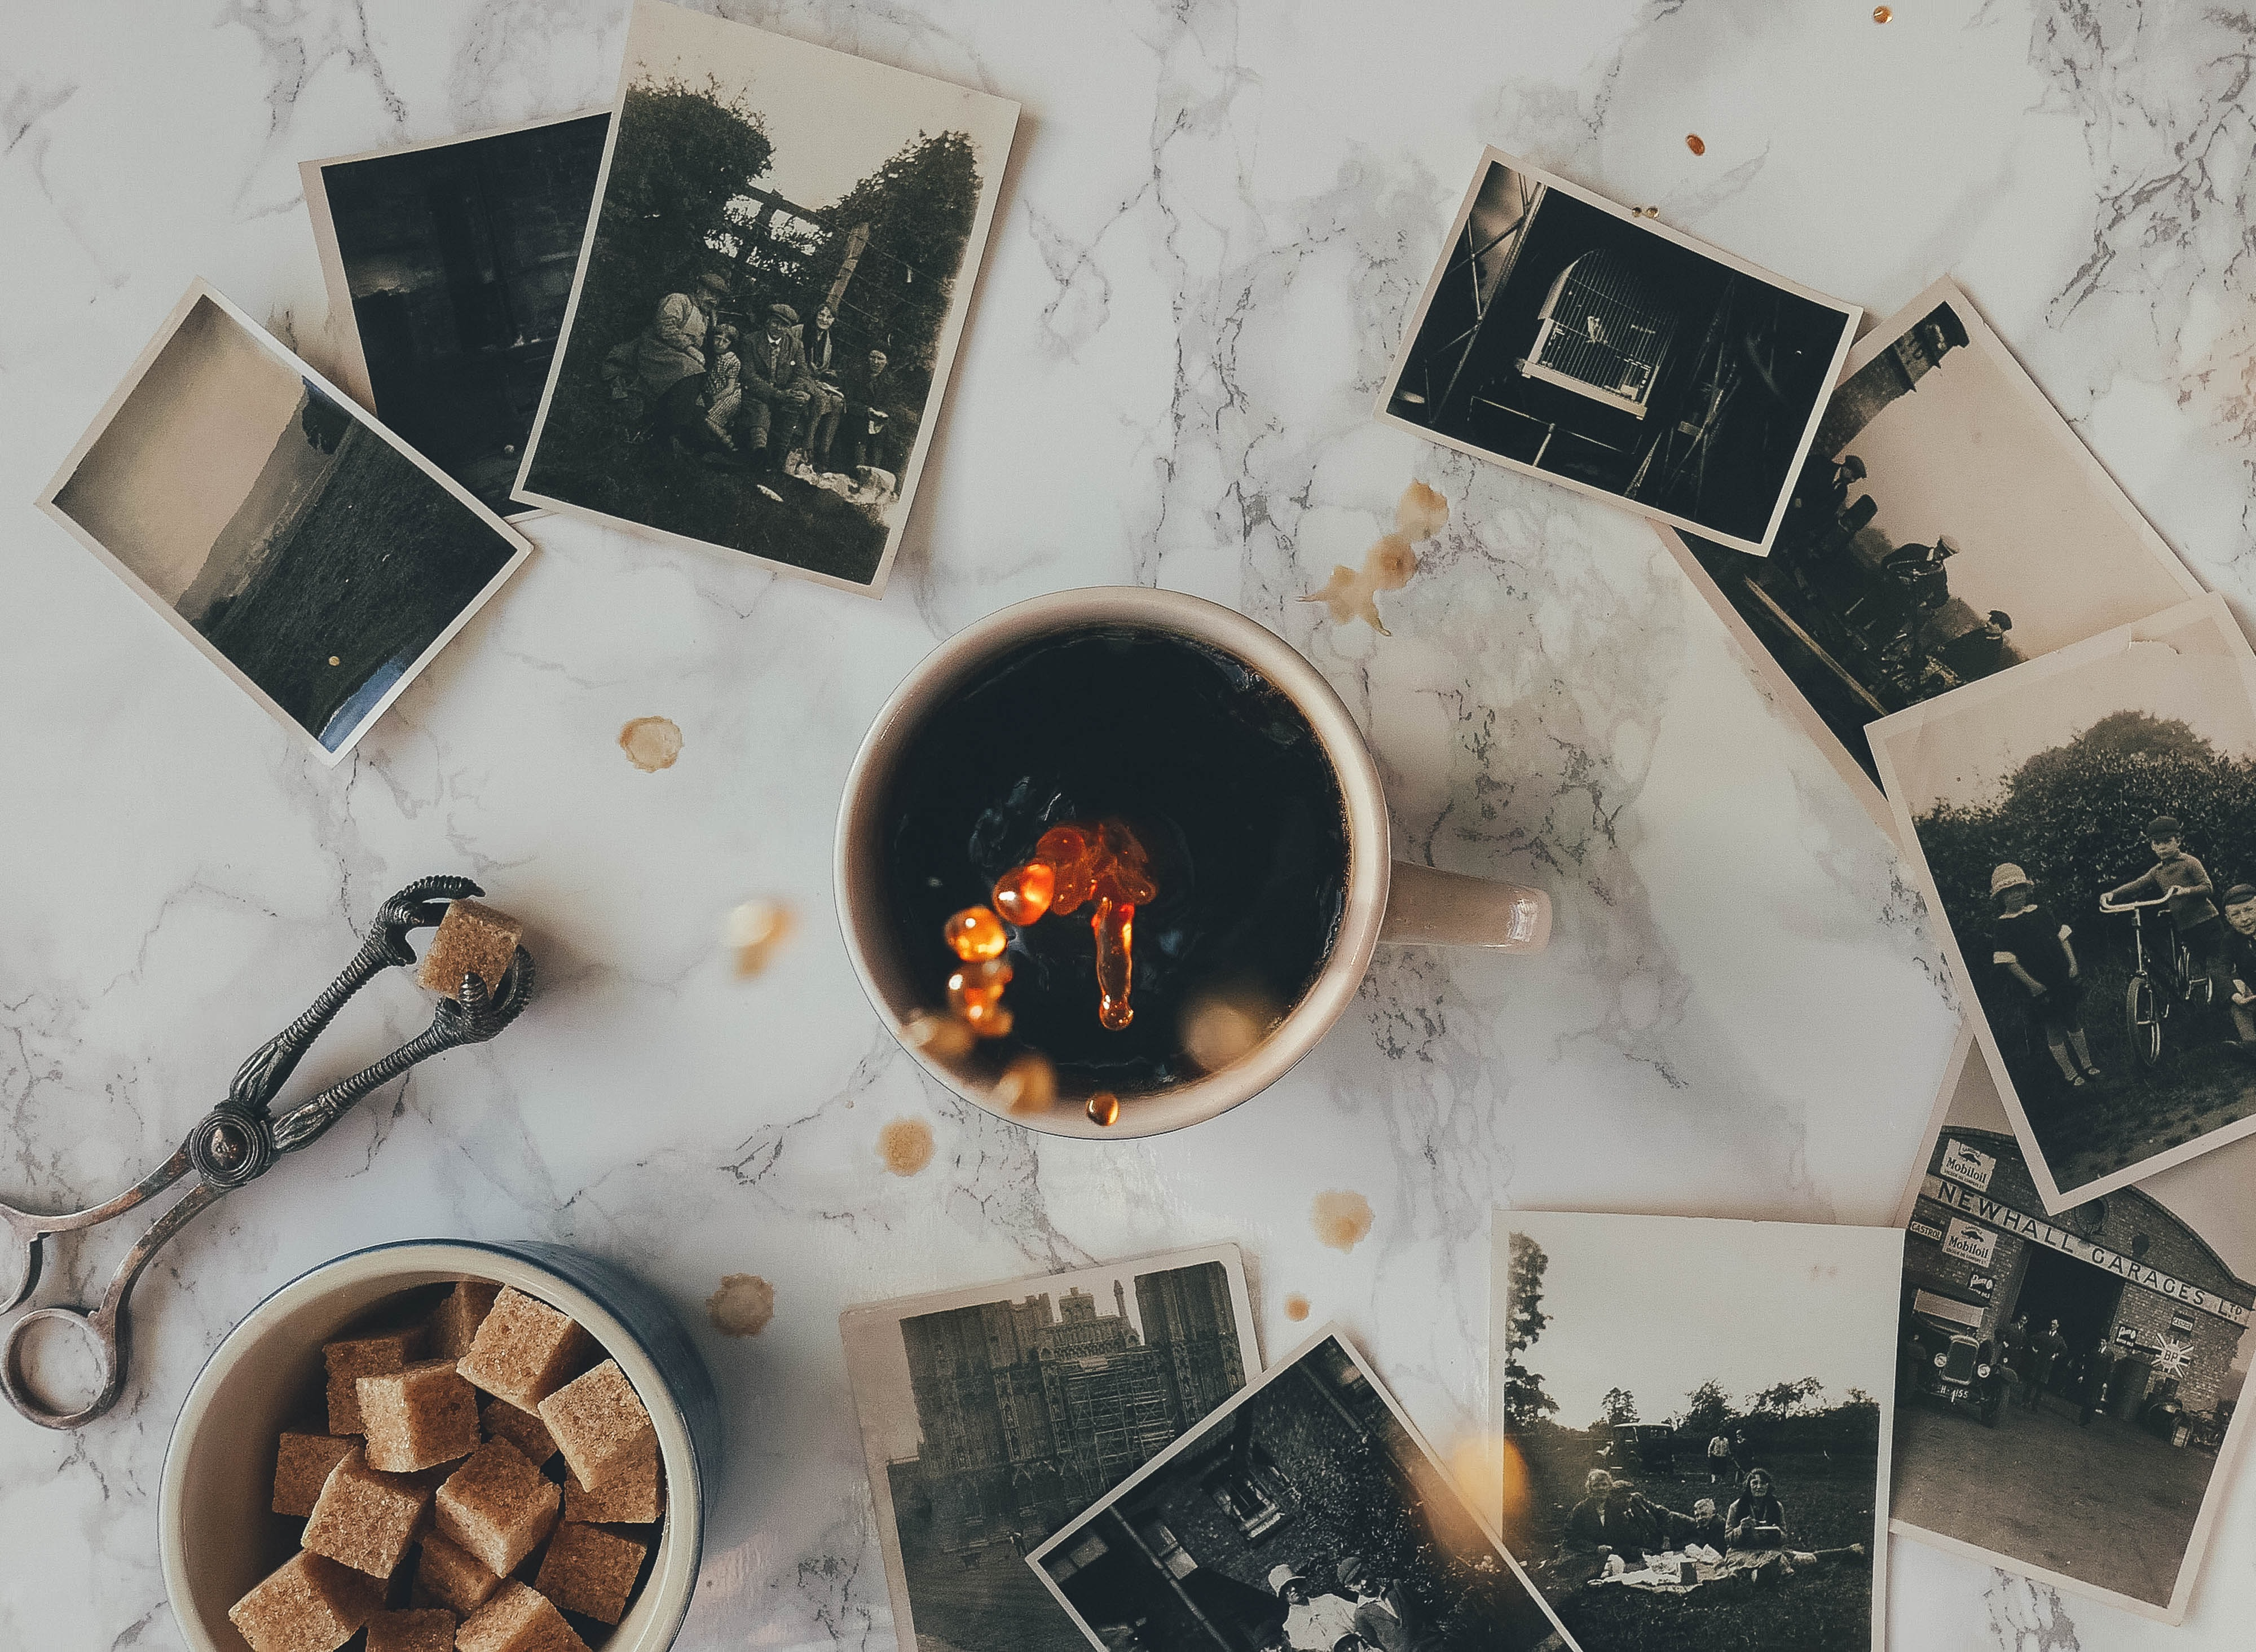 A flatlay with a cup of coffee, brown sugar cubes and black-and-white photographs